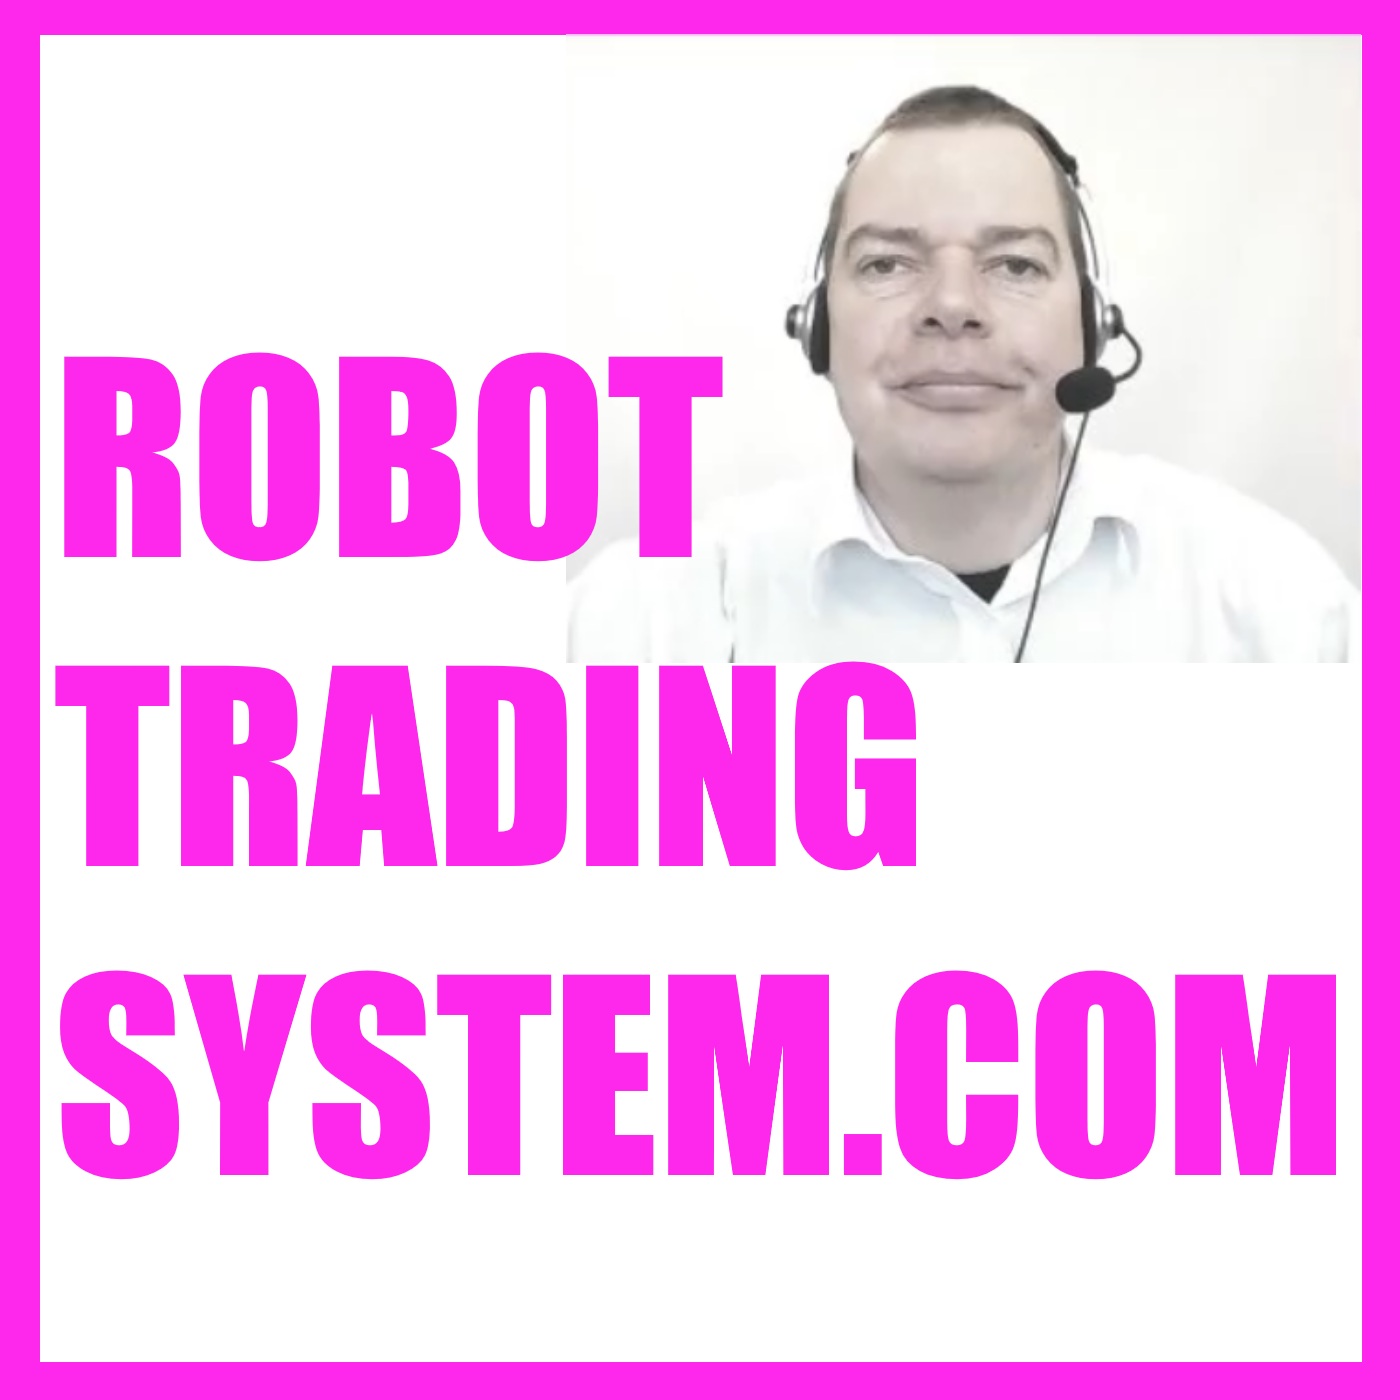 Robot Trading System